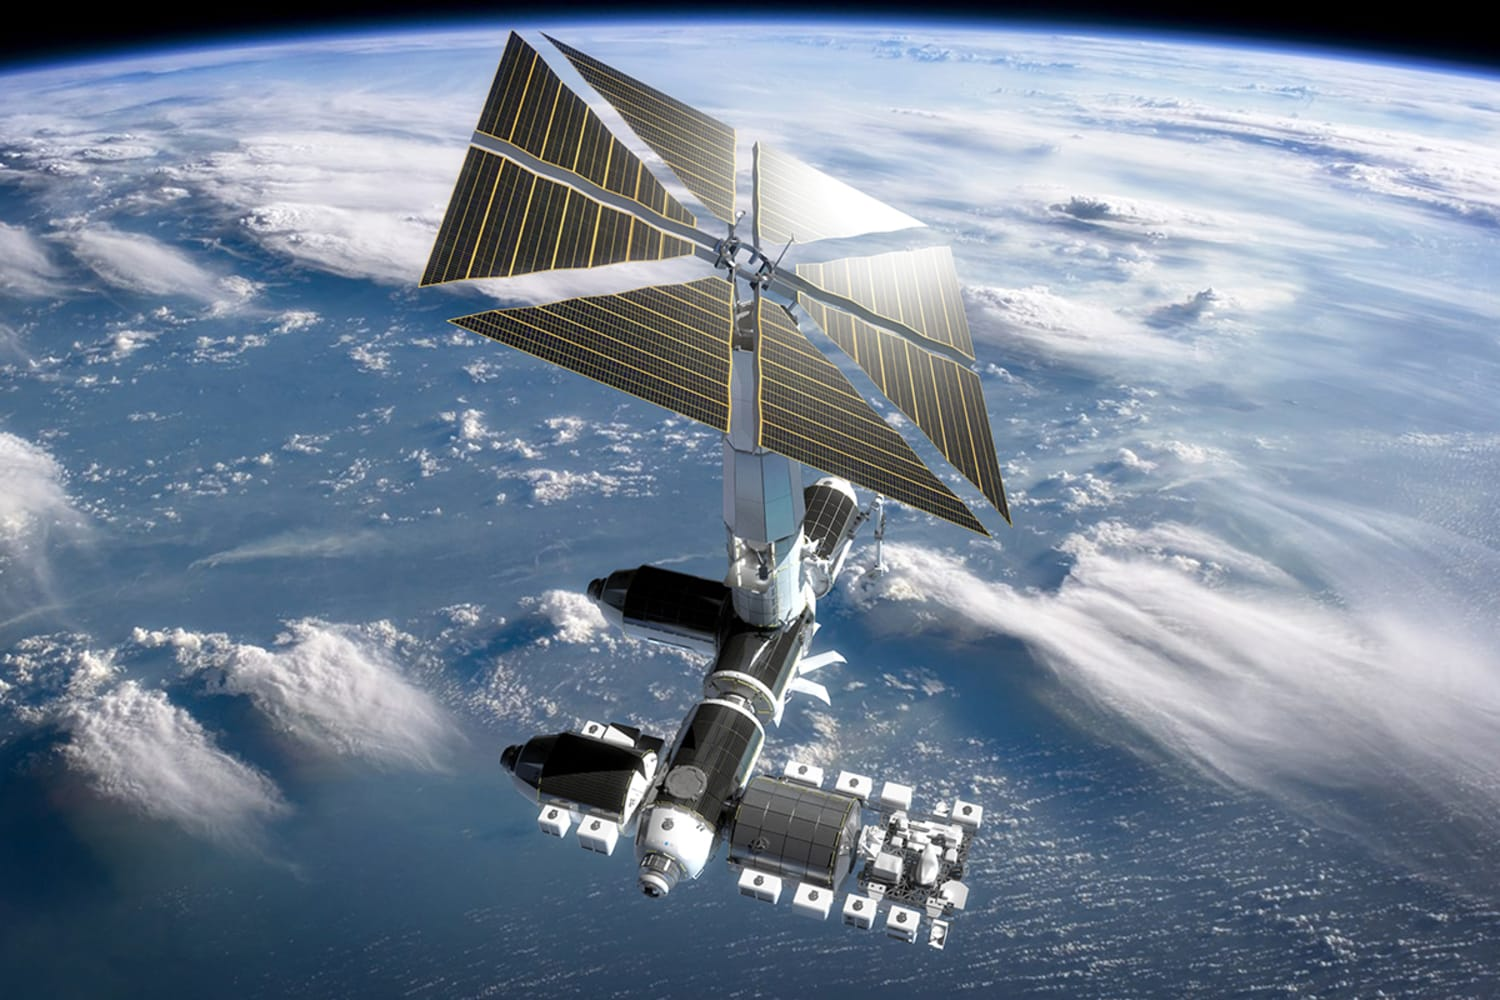 WEB Image Axiom Station zenith view